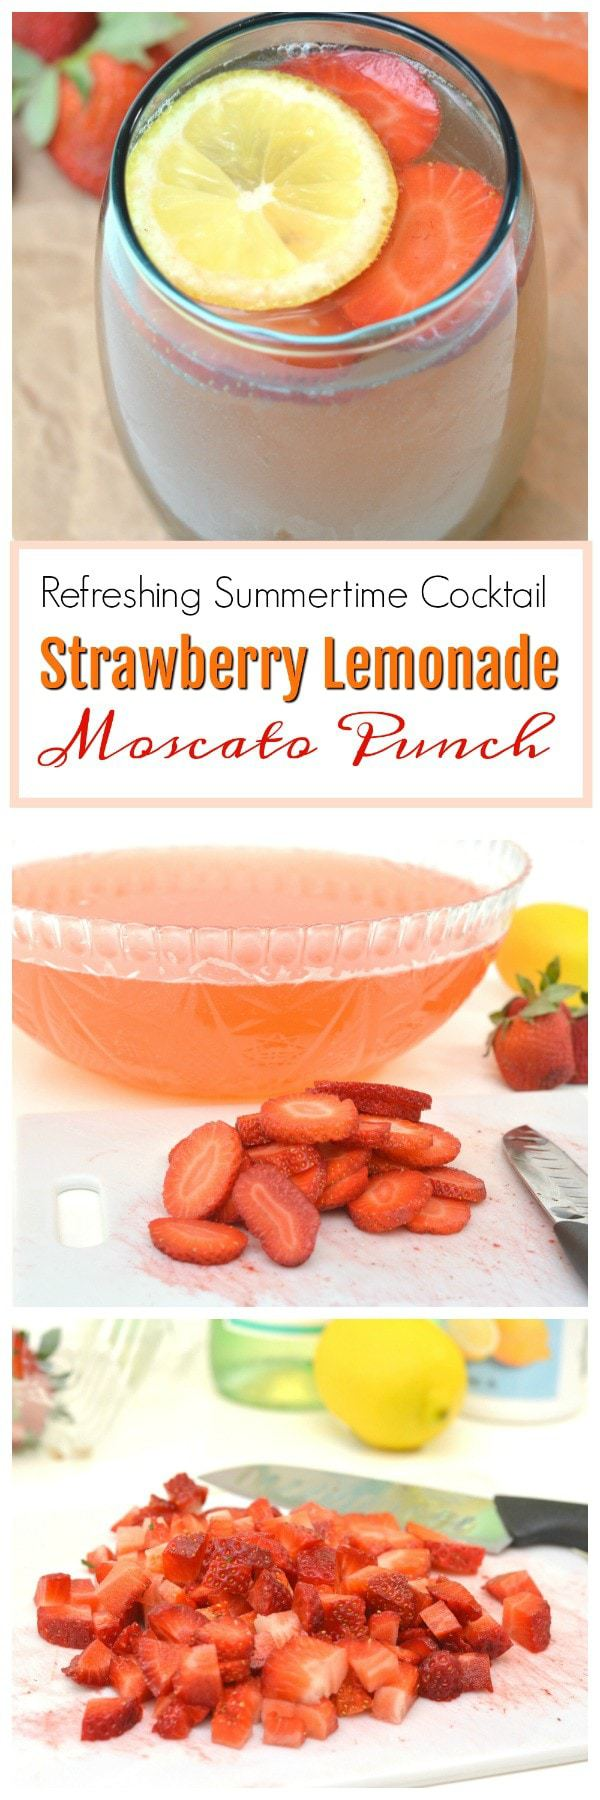 When you think of sitting in the sun, sipping on a refreshing adult beverage, what better drink to make that reality happen than with a Strawberry Lemonade Moscato Punch. #MoscatoPunch #RefreshingCocktails